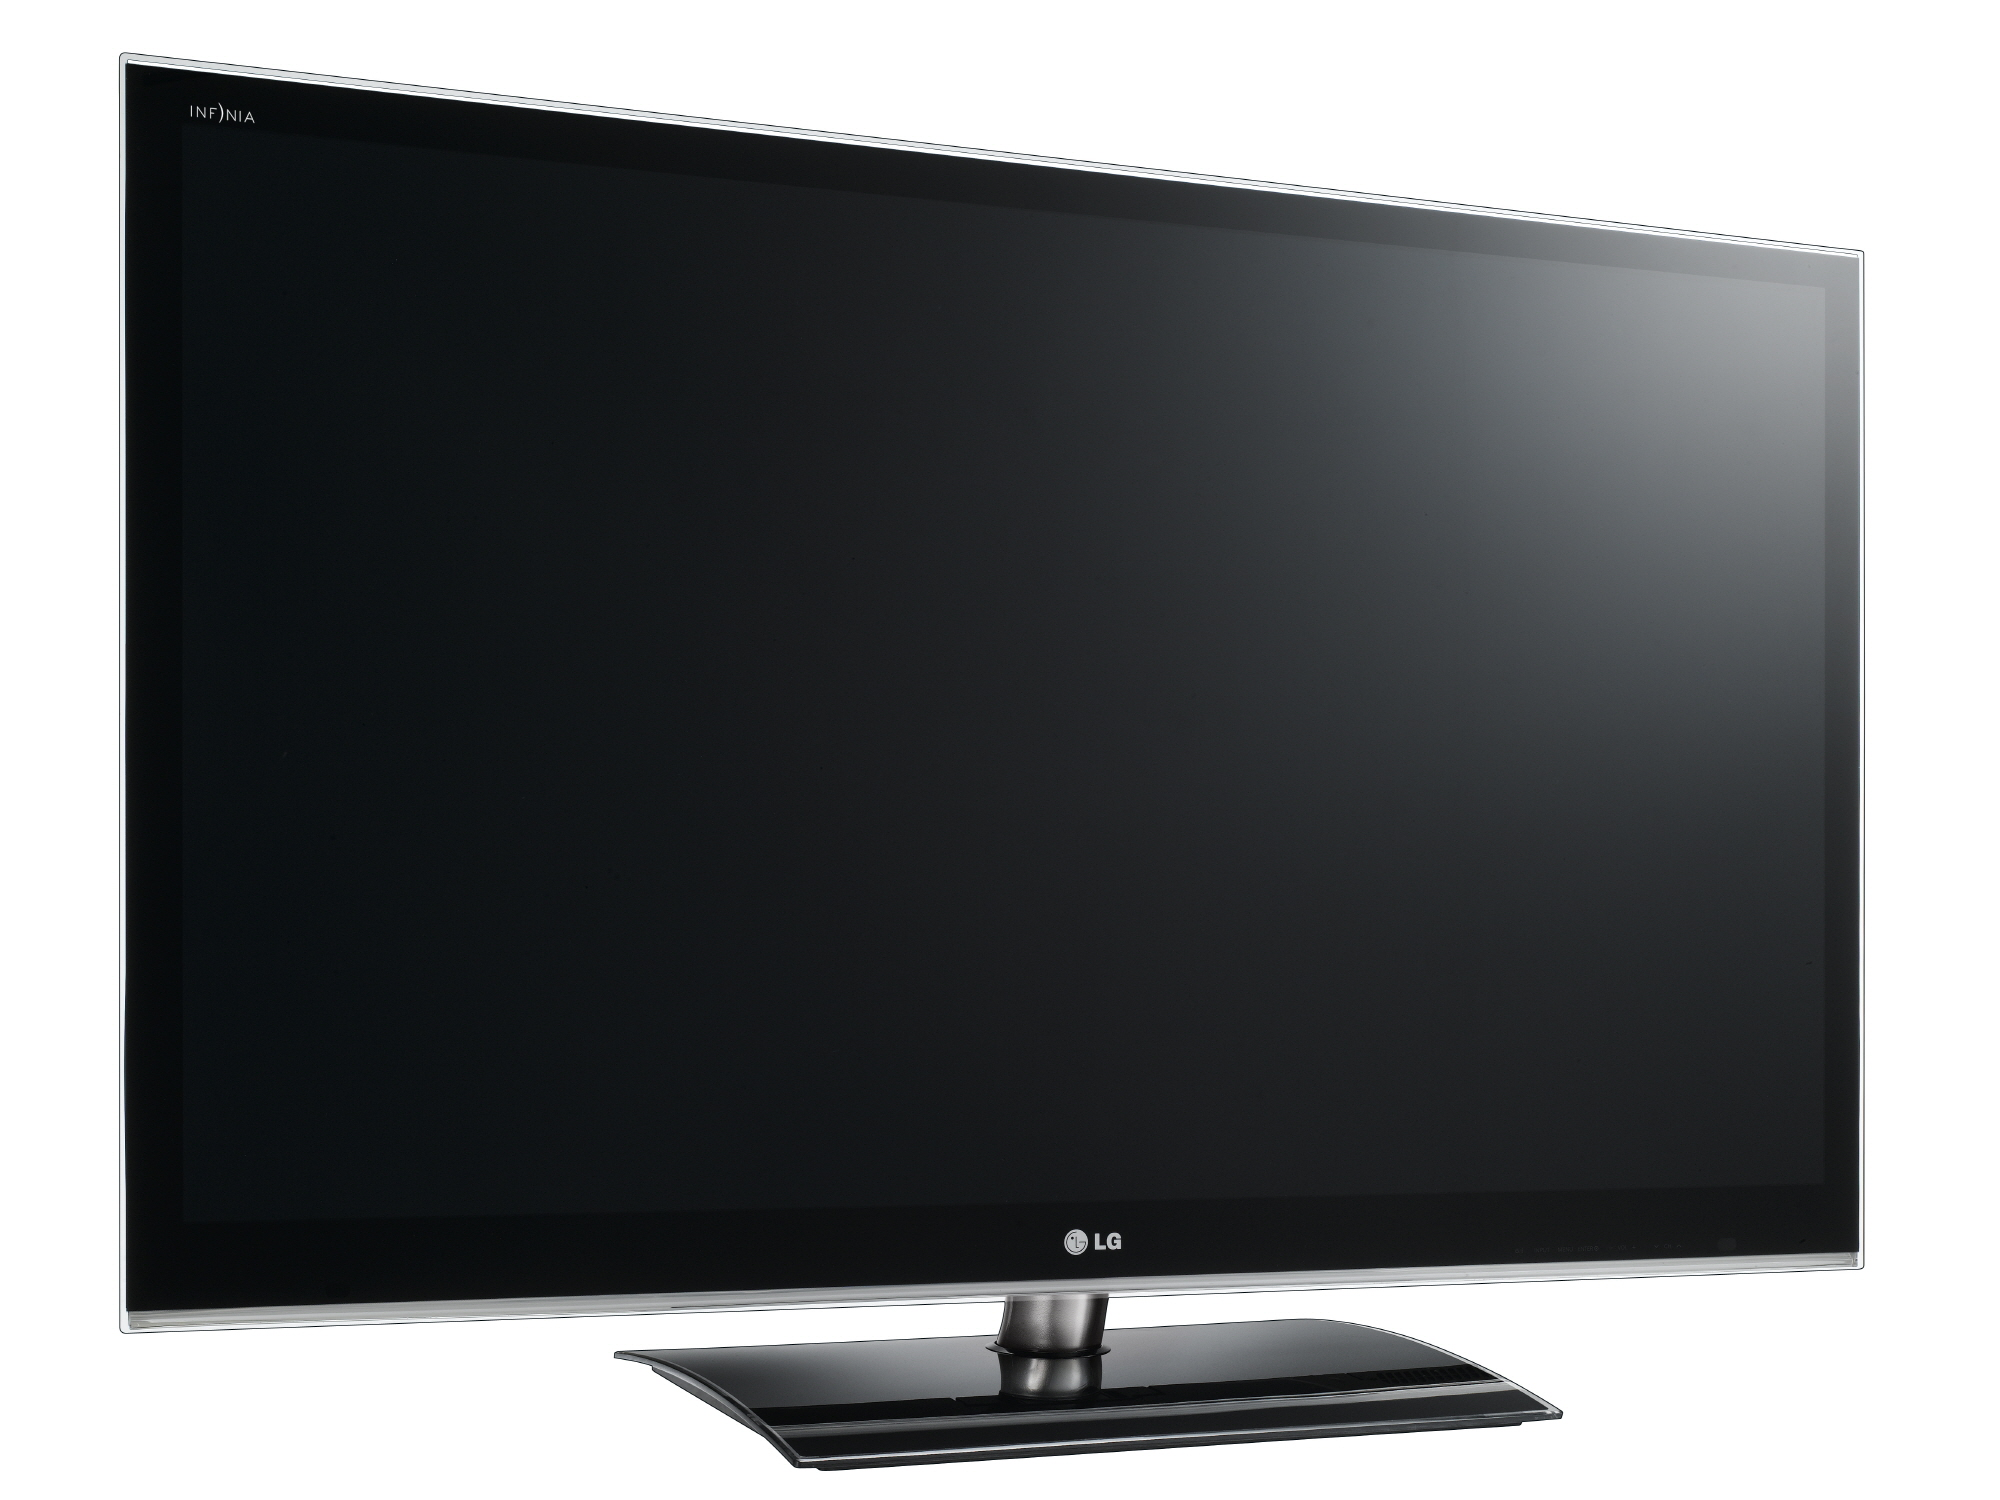 Left-side view of LG INFINIA PZ950